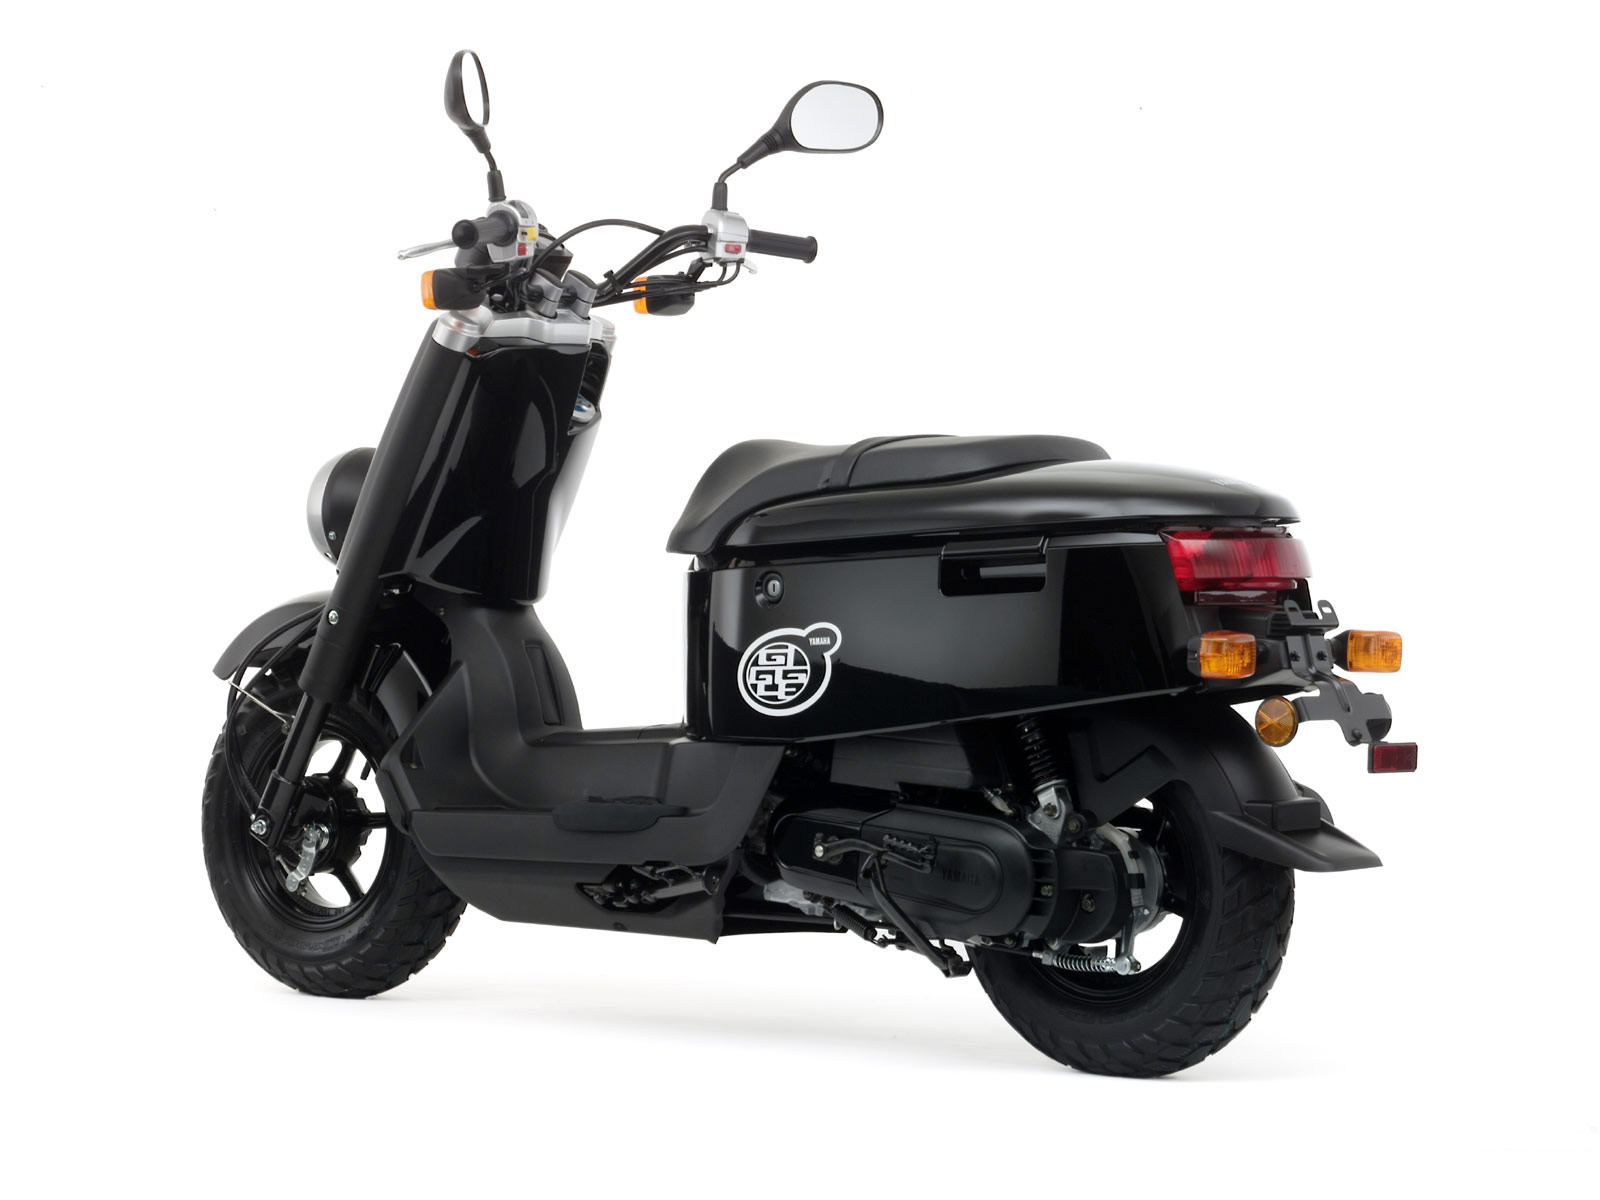 2008 yamaha giggle scooter insurance information pictures. Black Bedroom Furniture Sets. Home Design Ideas